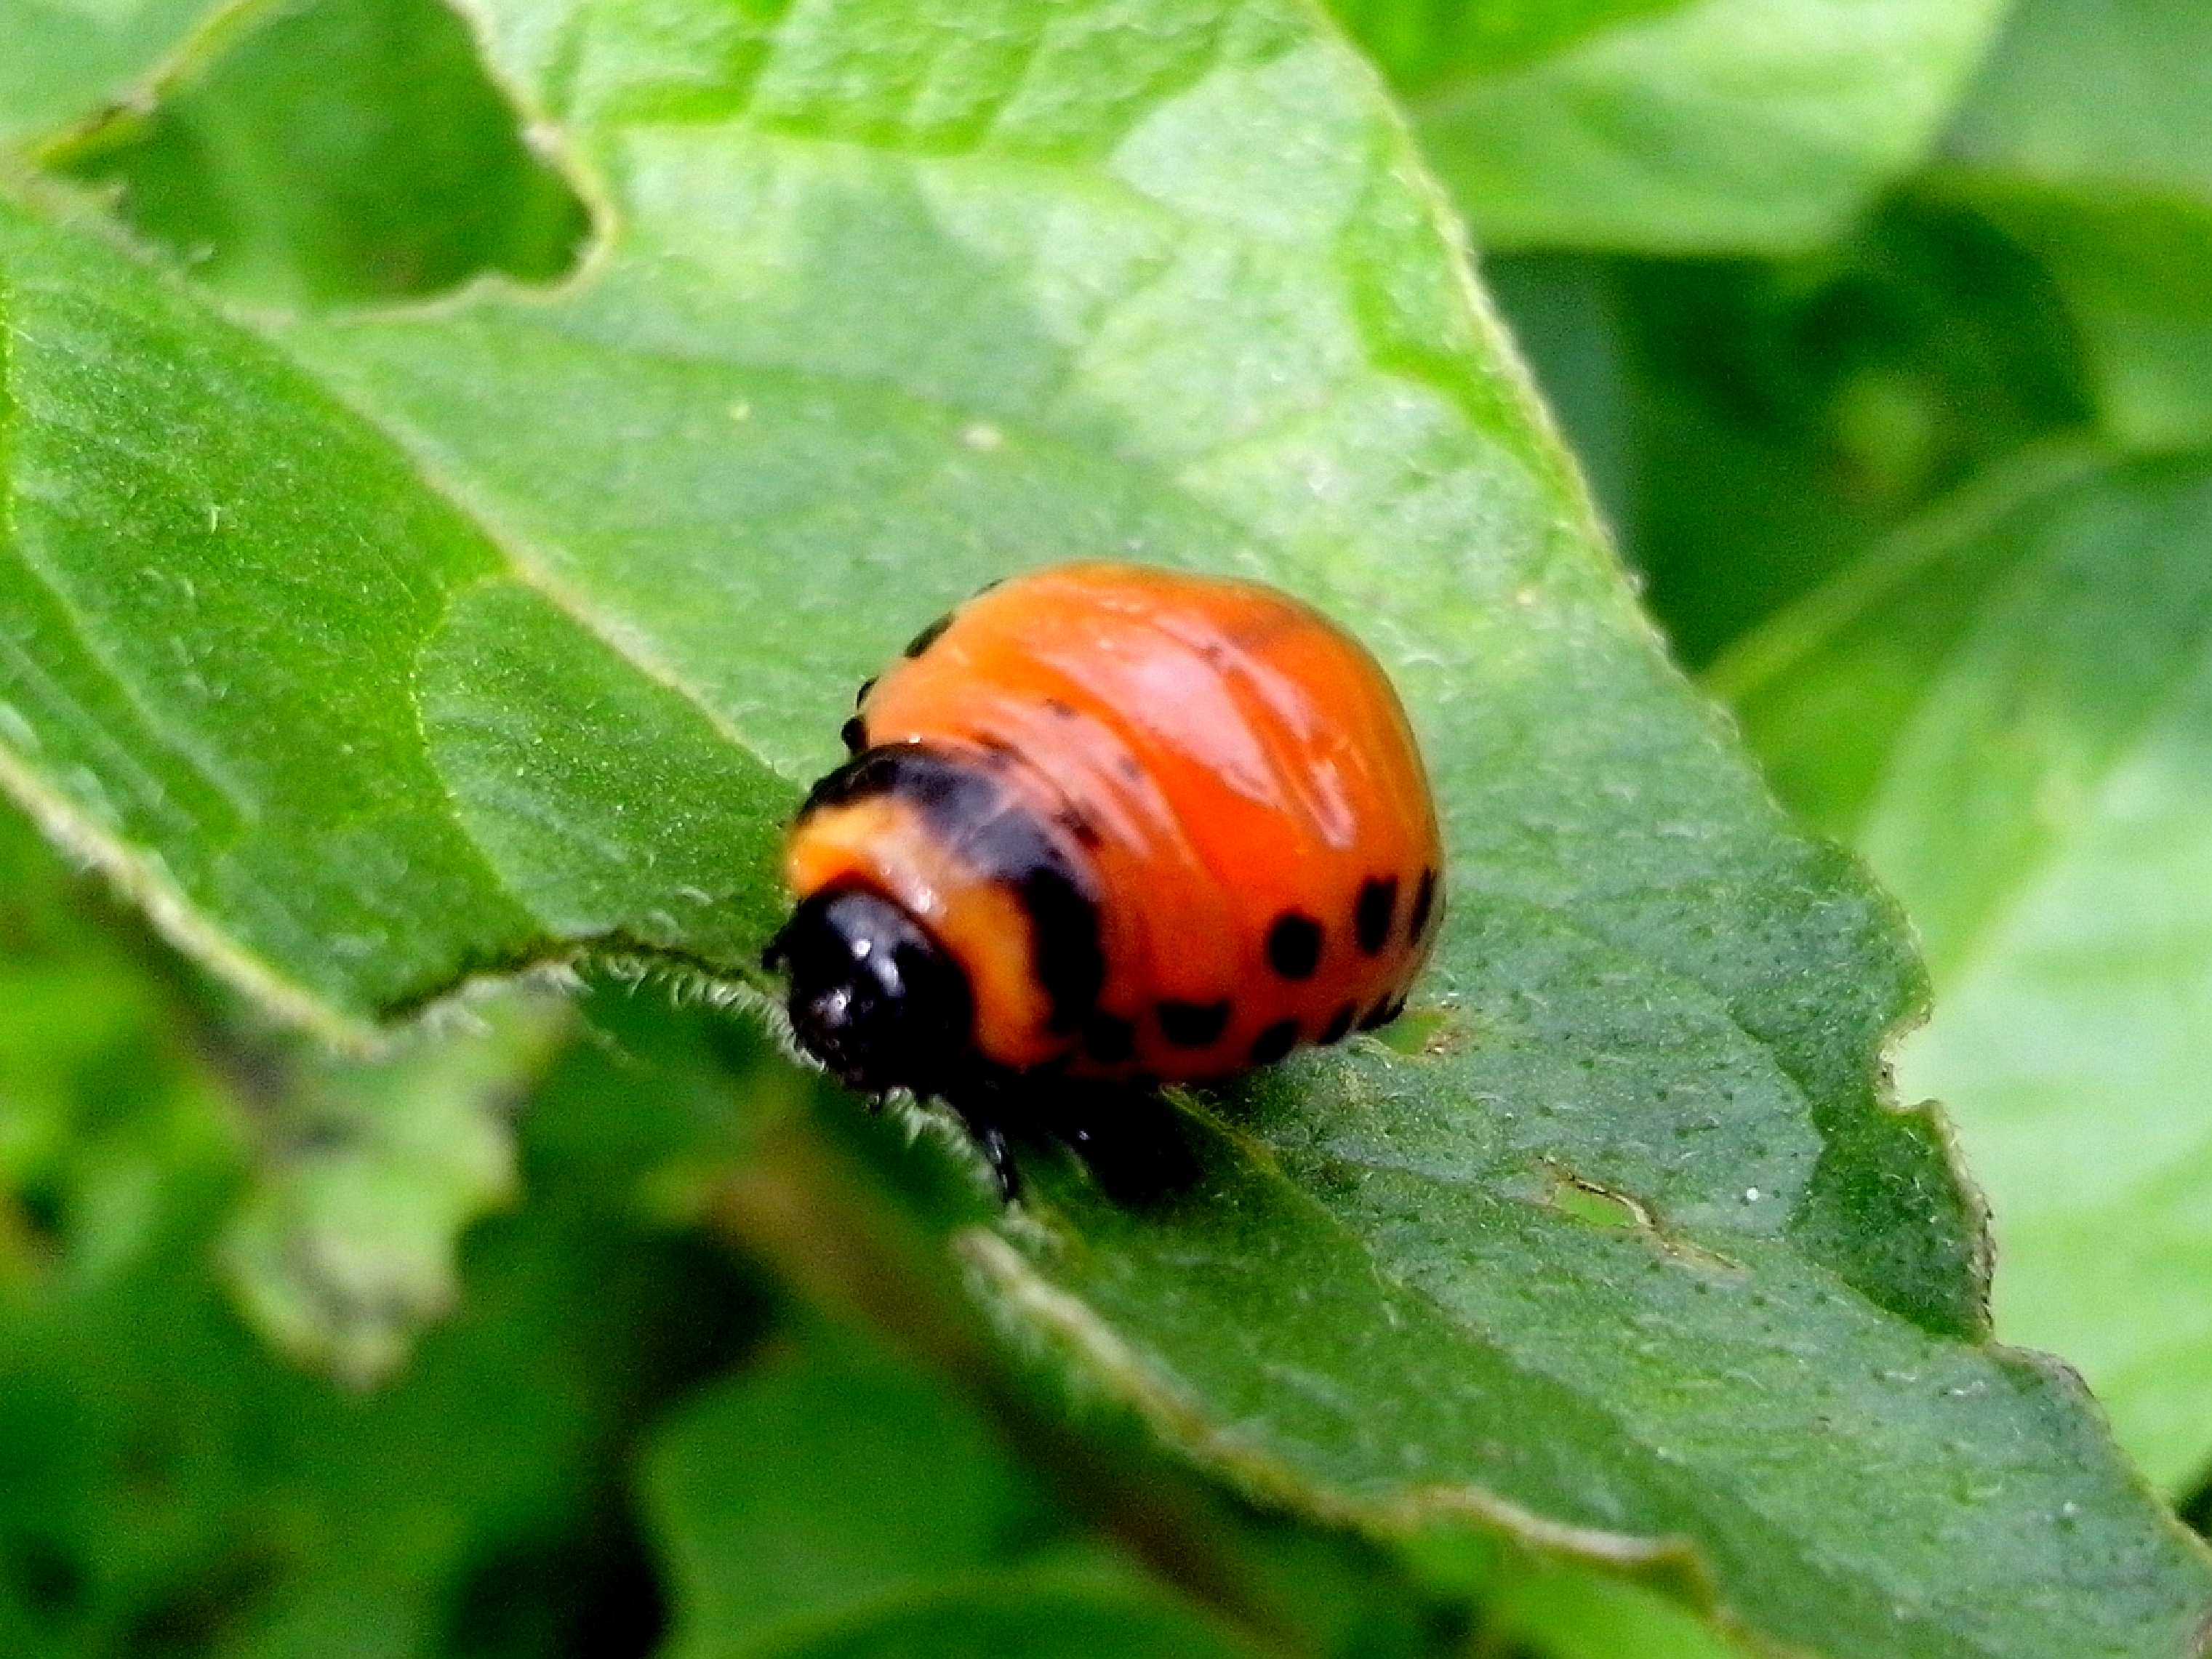 Free photograph; potato, bug, insect, eating, green, leaves